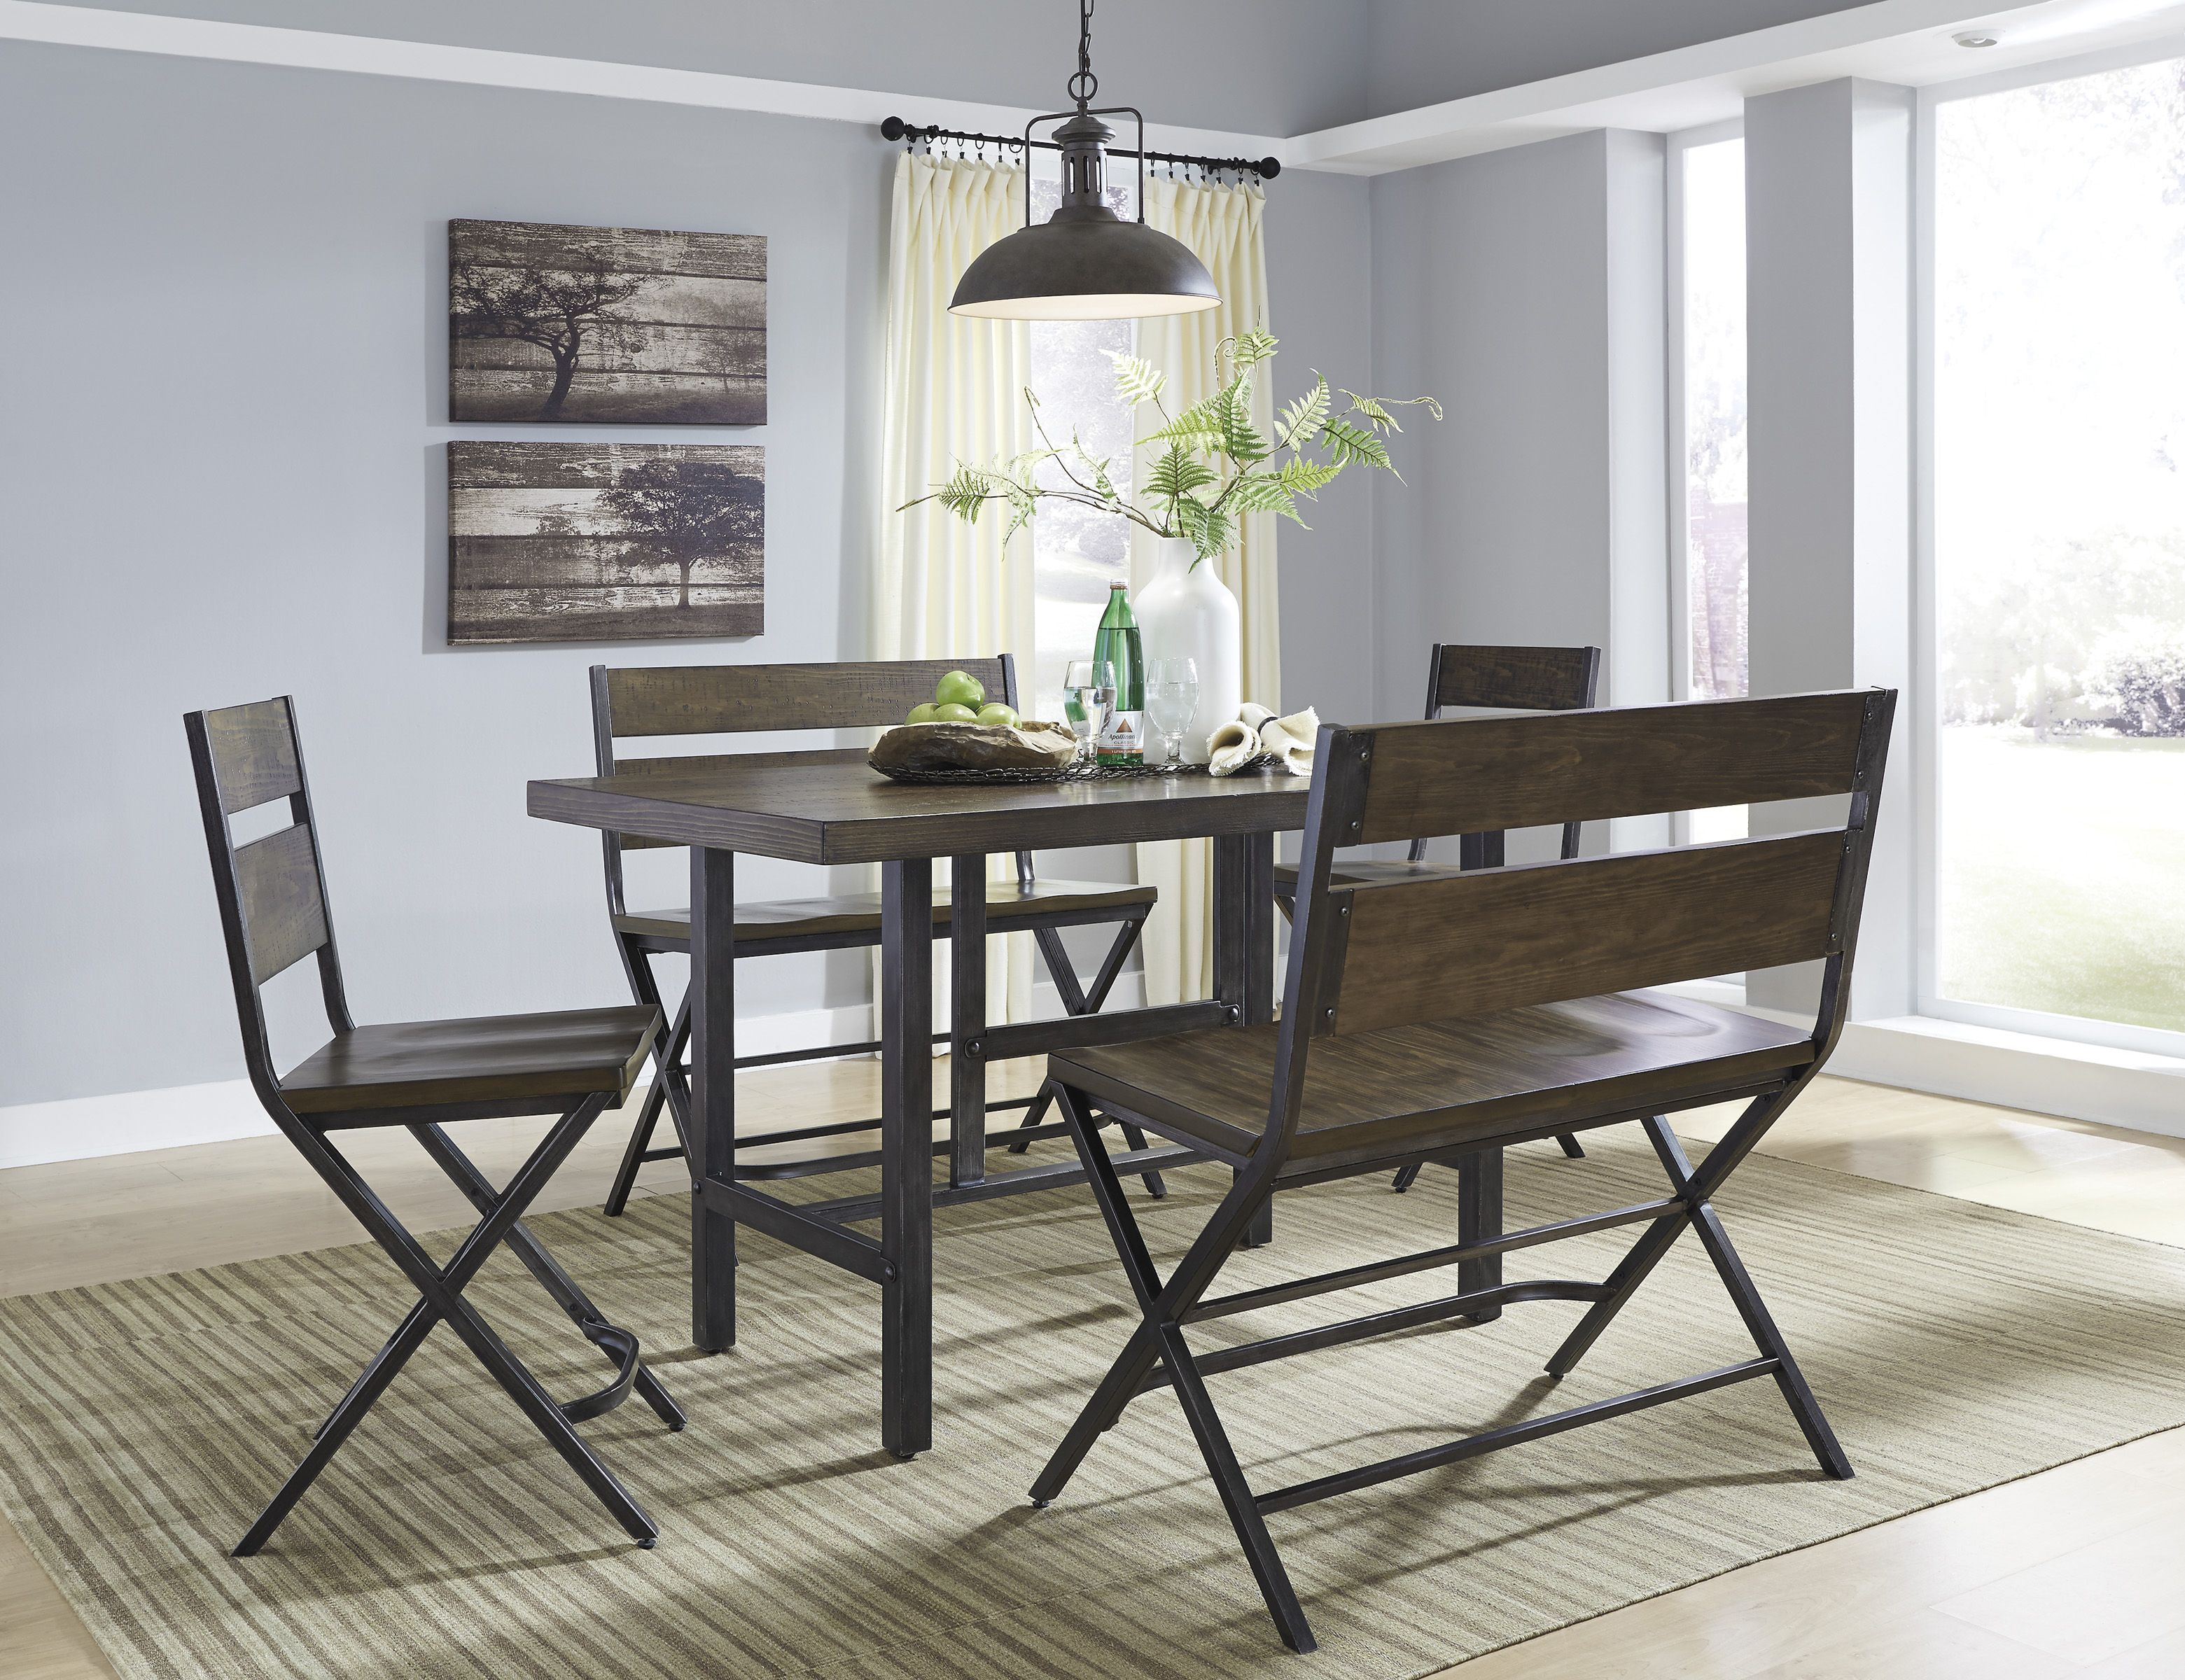 Explore Dining Room Sets Furniture And More